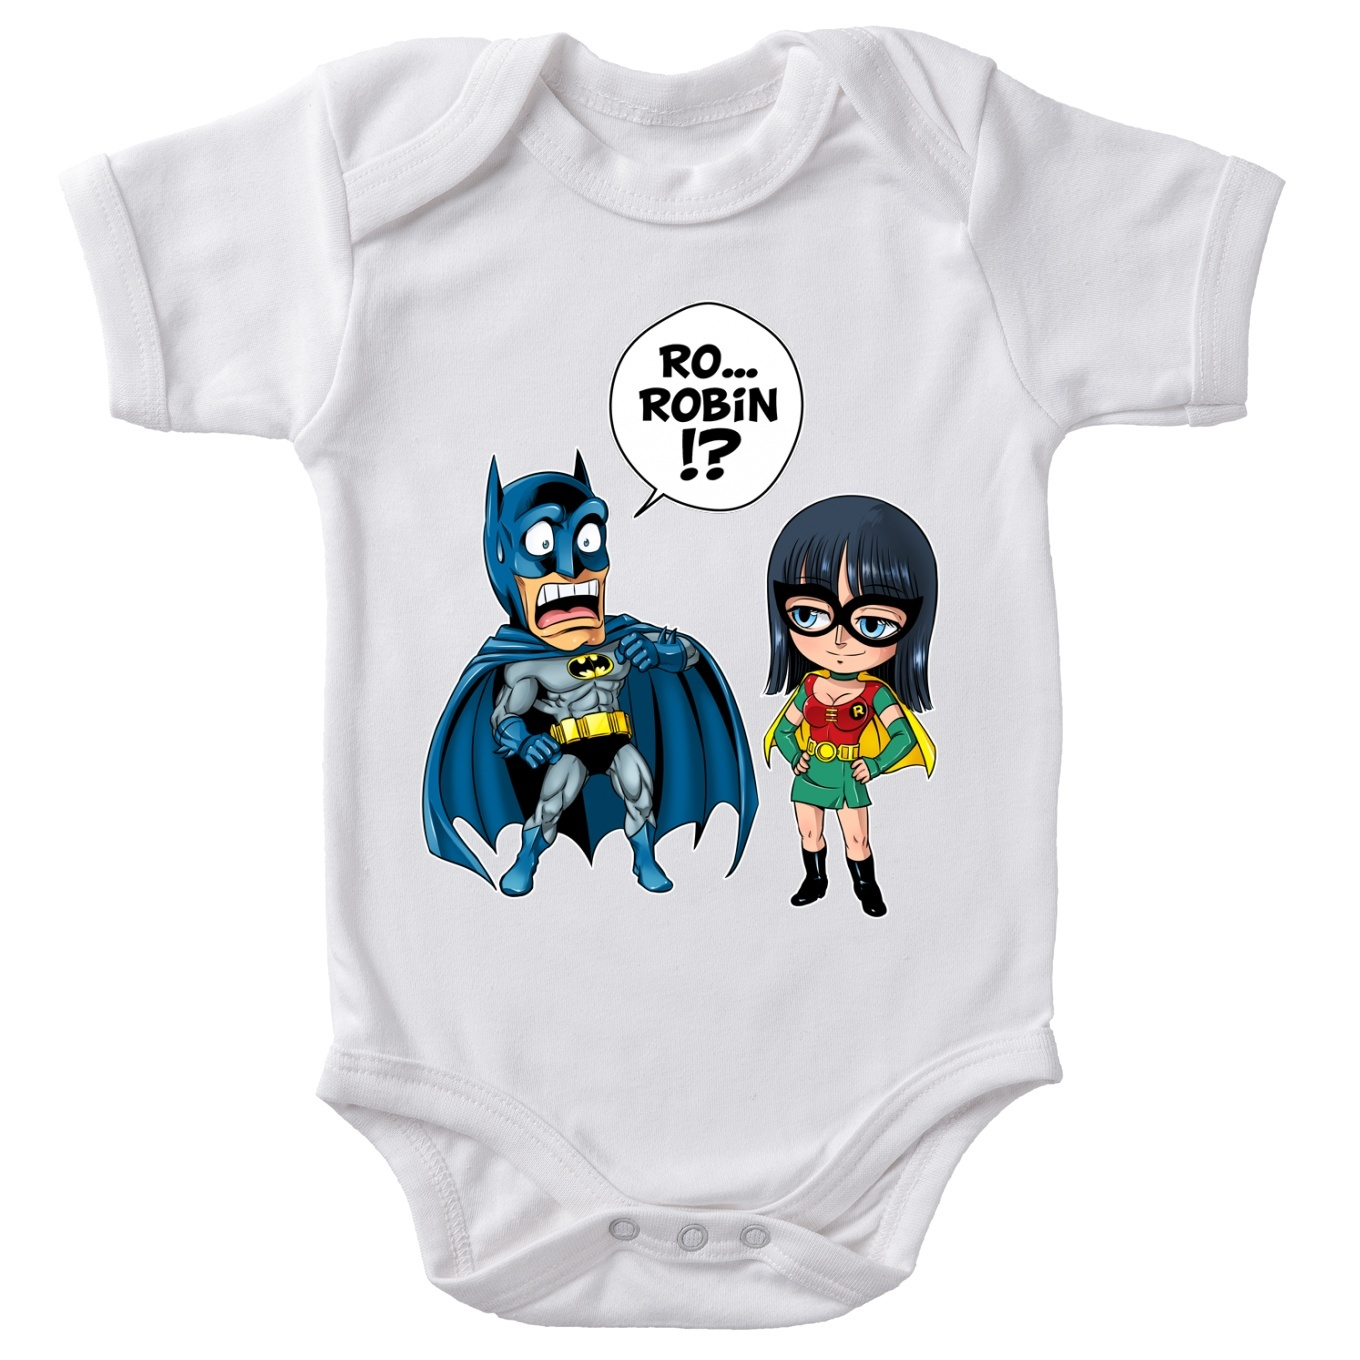 Short sleeve Baby Bodysuits Manga Parodies